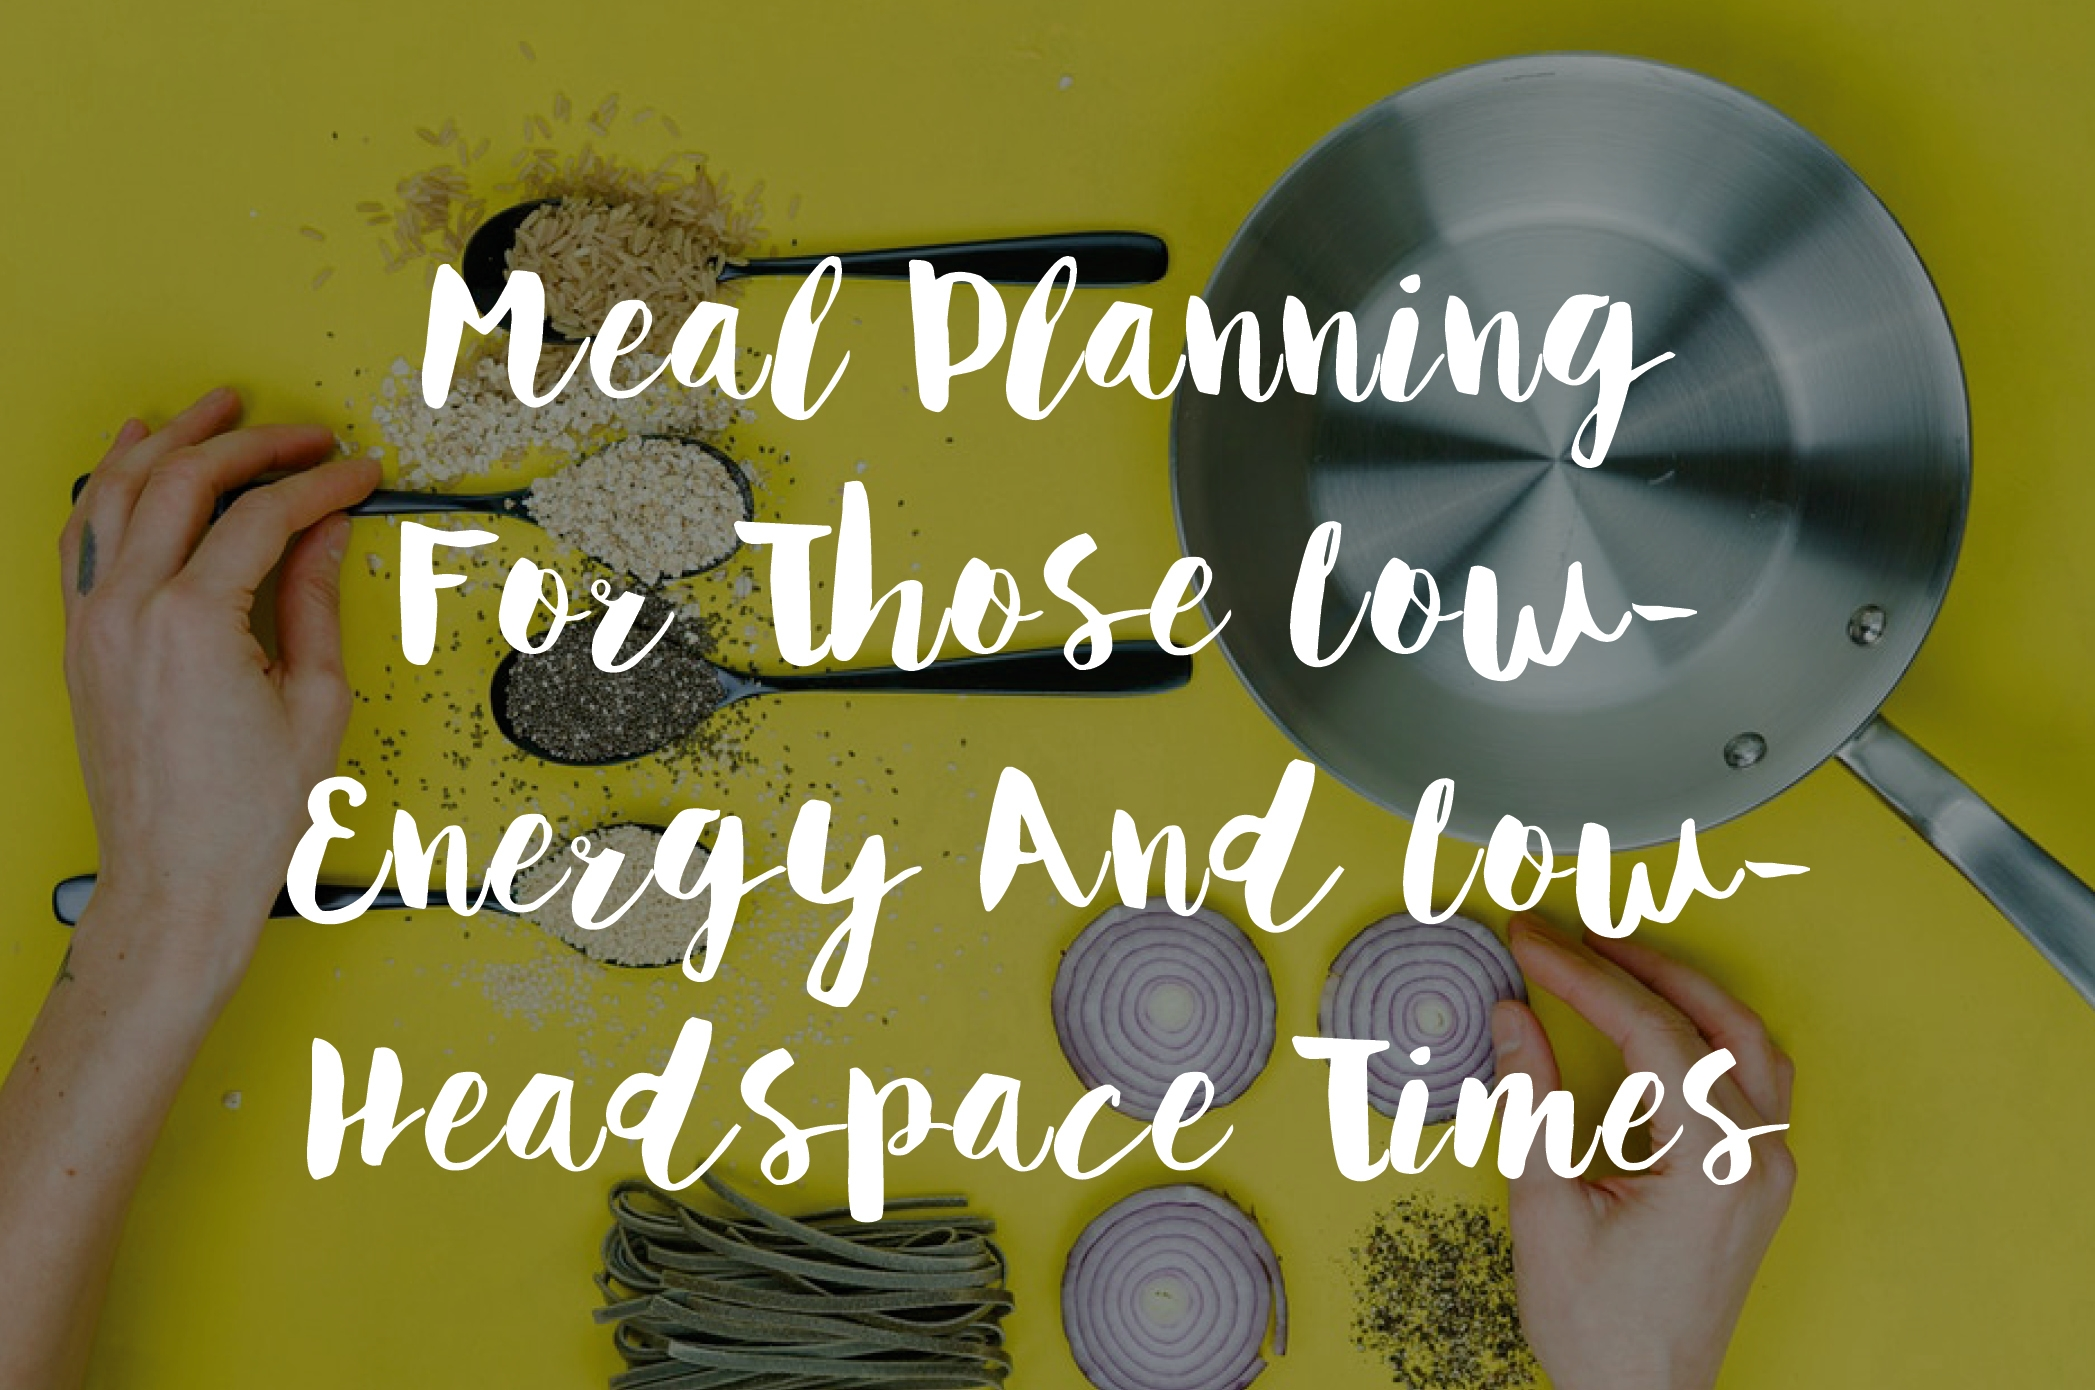 Meal Planning For Those Low Energy And Low Headspace Times